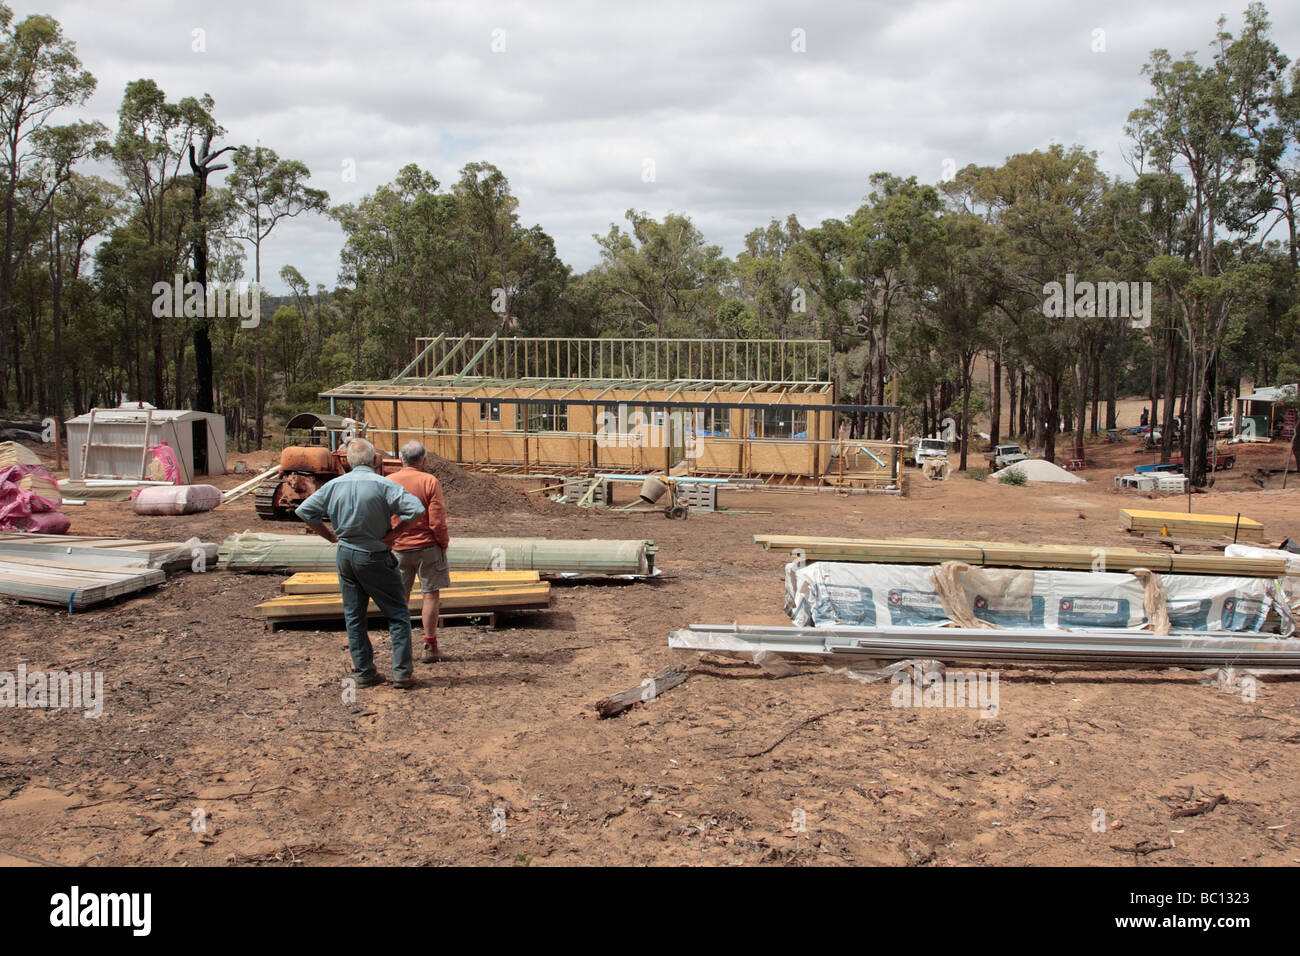 Wood frame house under construction in Bridgetown Western Australia - Stock Image